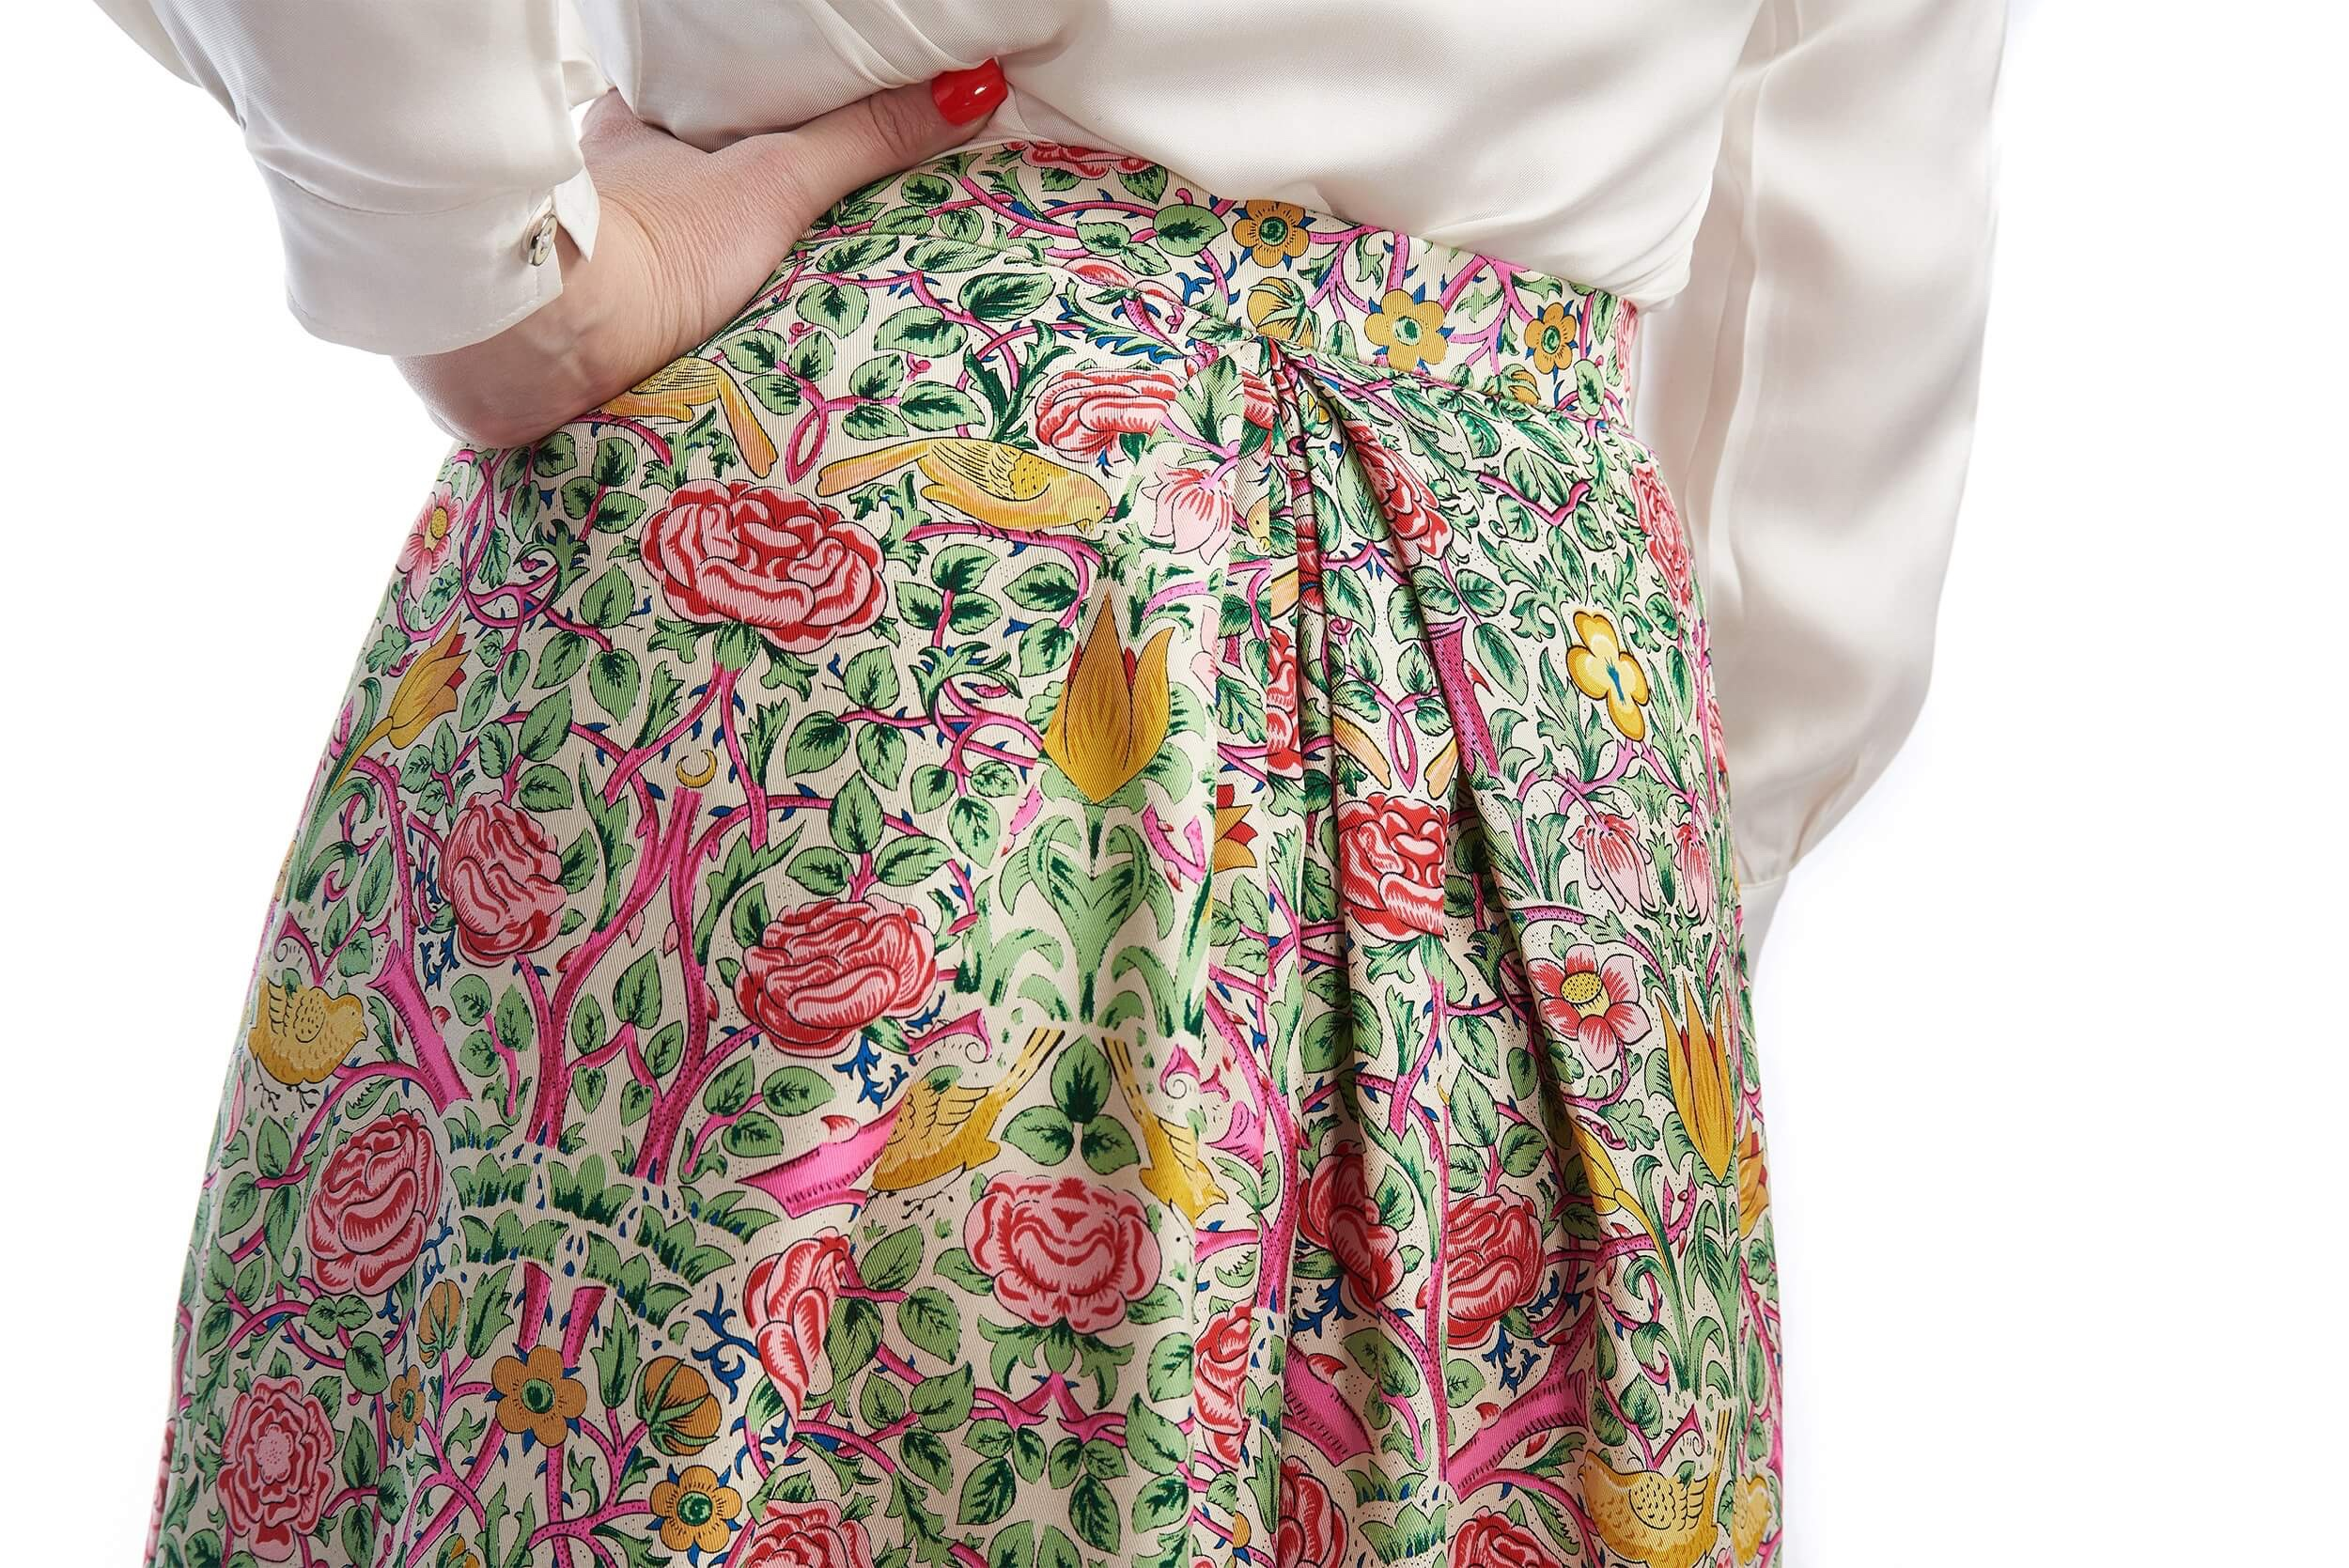 back pleats of the lucie customized skirt